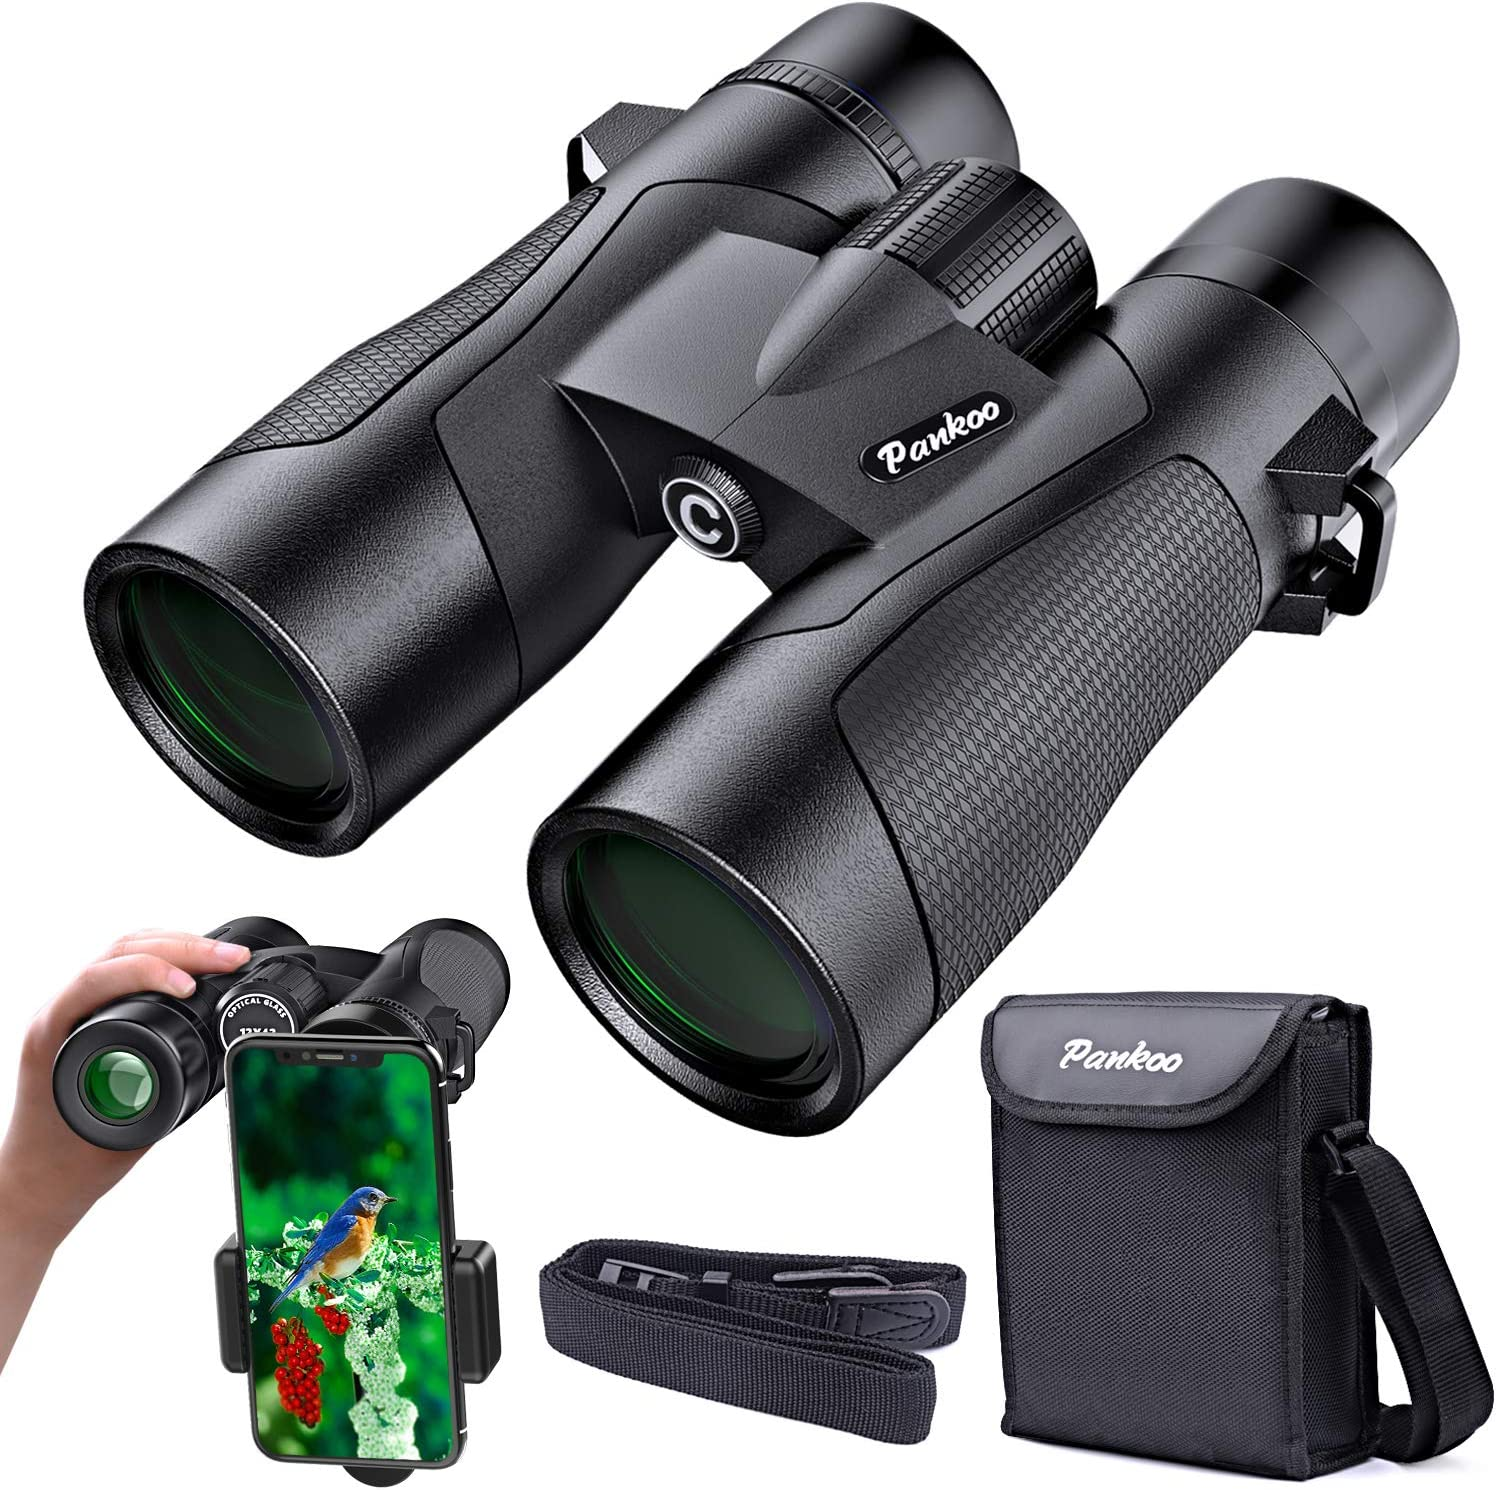 12×42 Binoculars for Adults-Pankoo HD Binocular for Bird Watching Travel Hiking Wildlife Hunting Concerts Theater-Waterproof Low Night Vision Lightweight-Compact-Binoculars-for-Adults